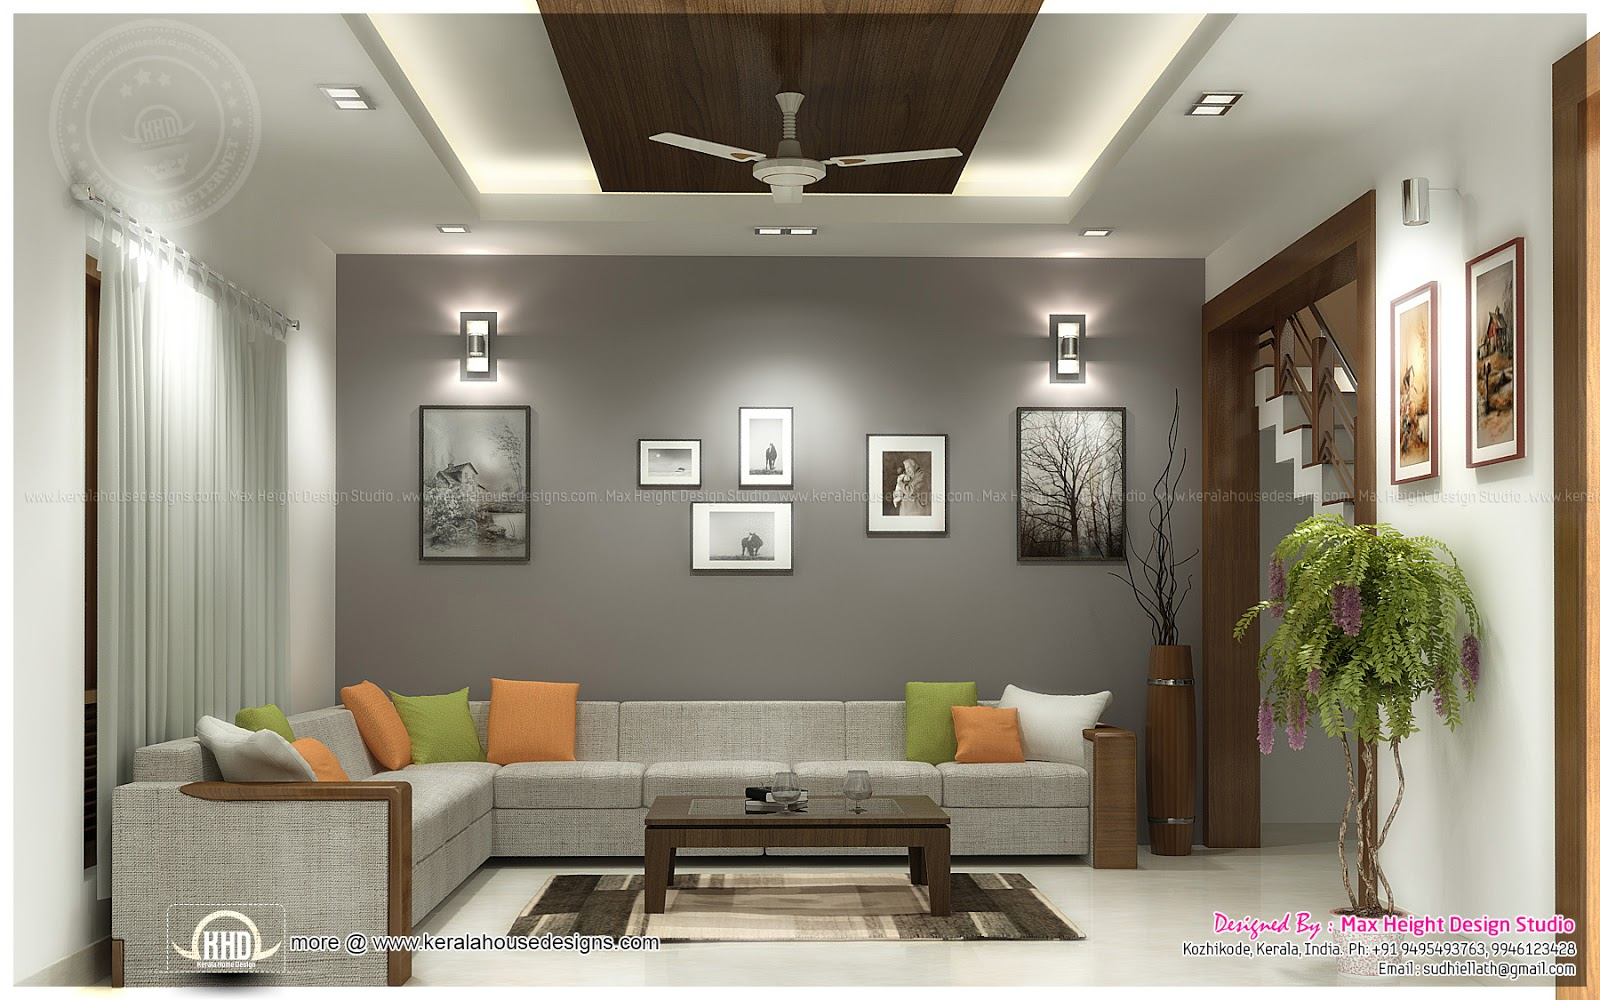 Beautiful interior ideas for home kerala home design and floor plans - Home decor with interior design ...